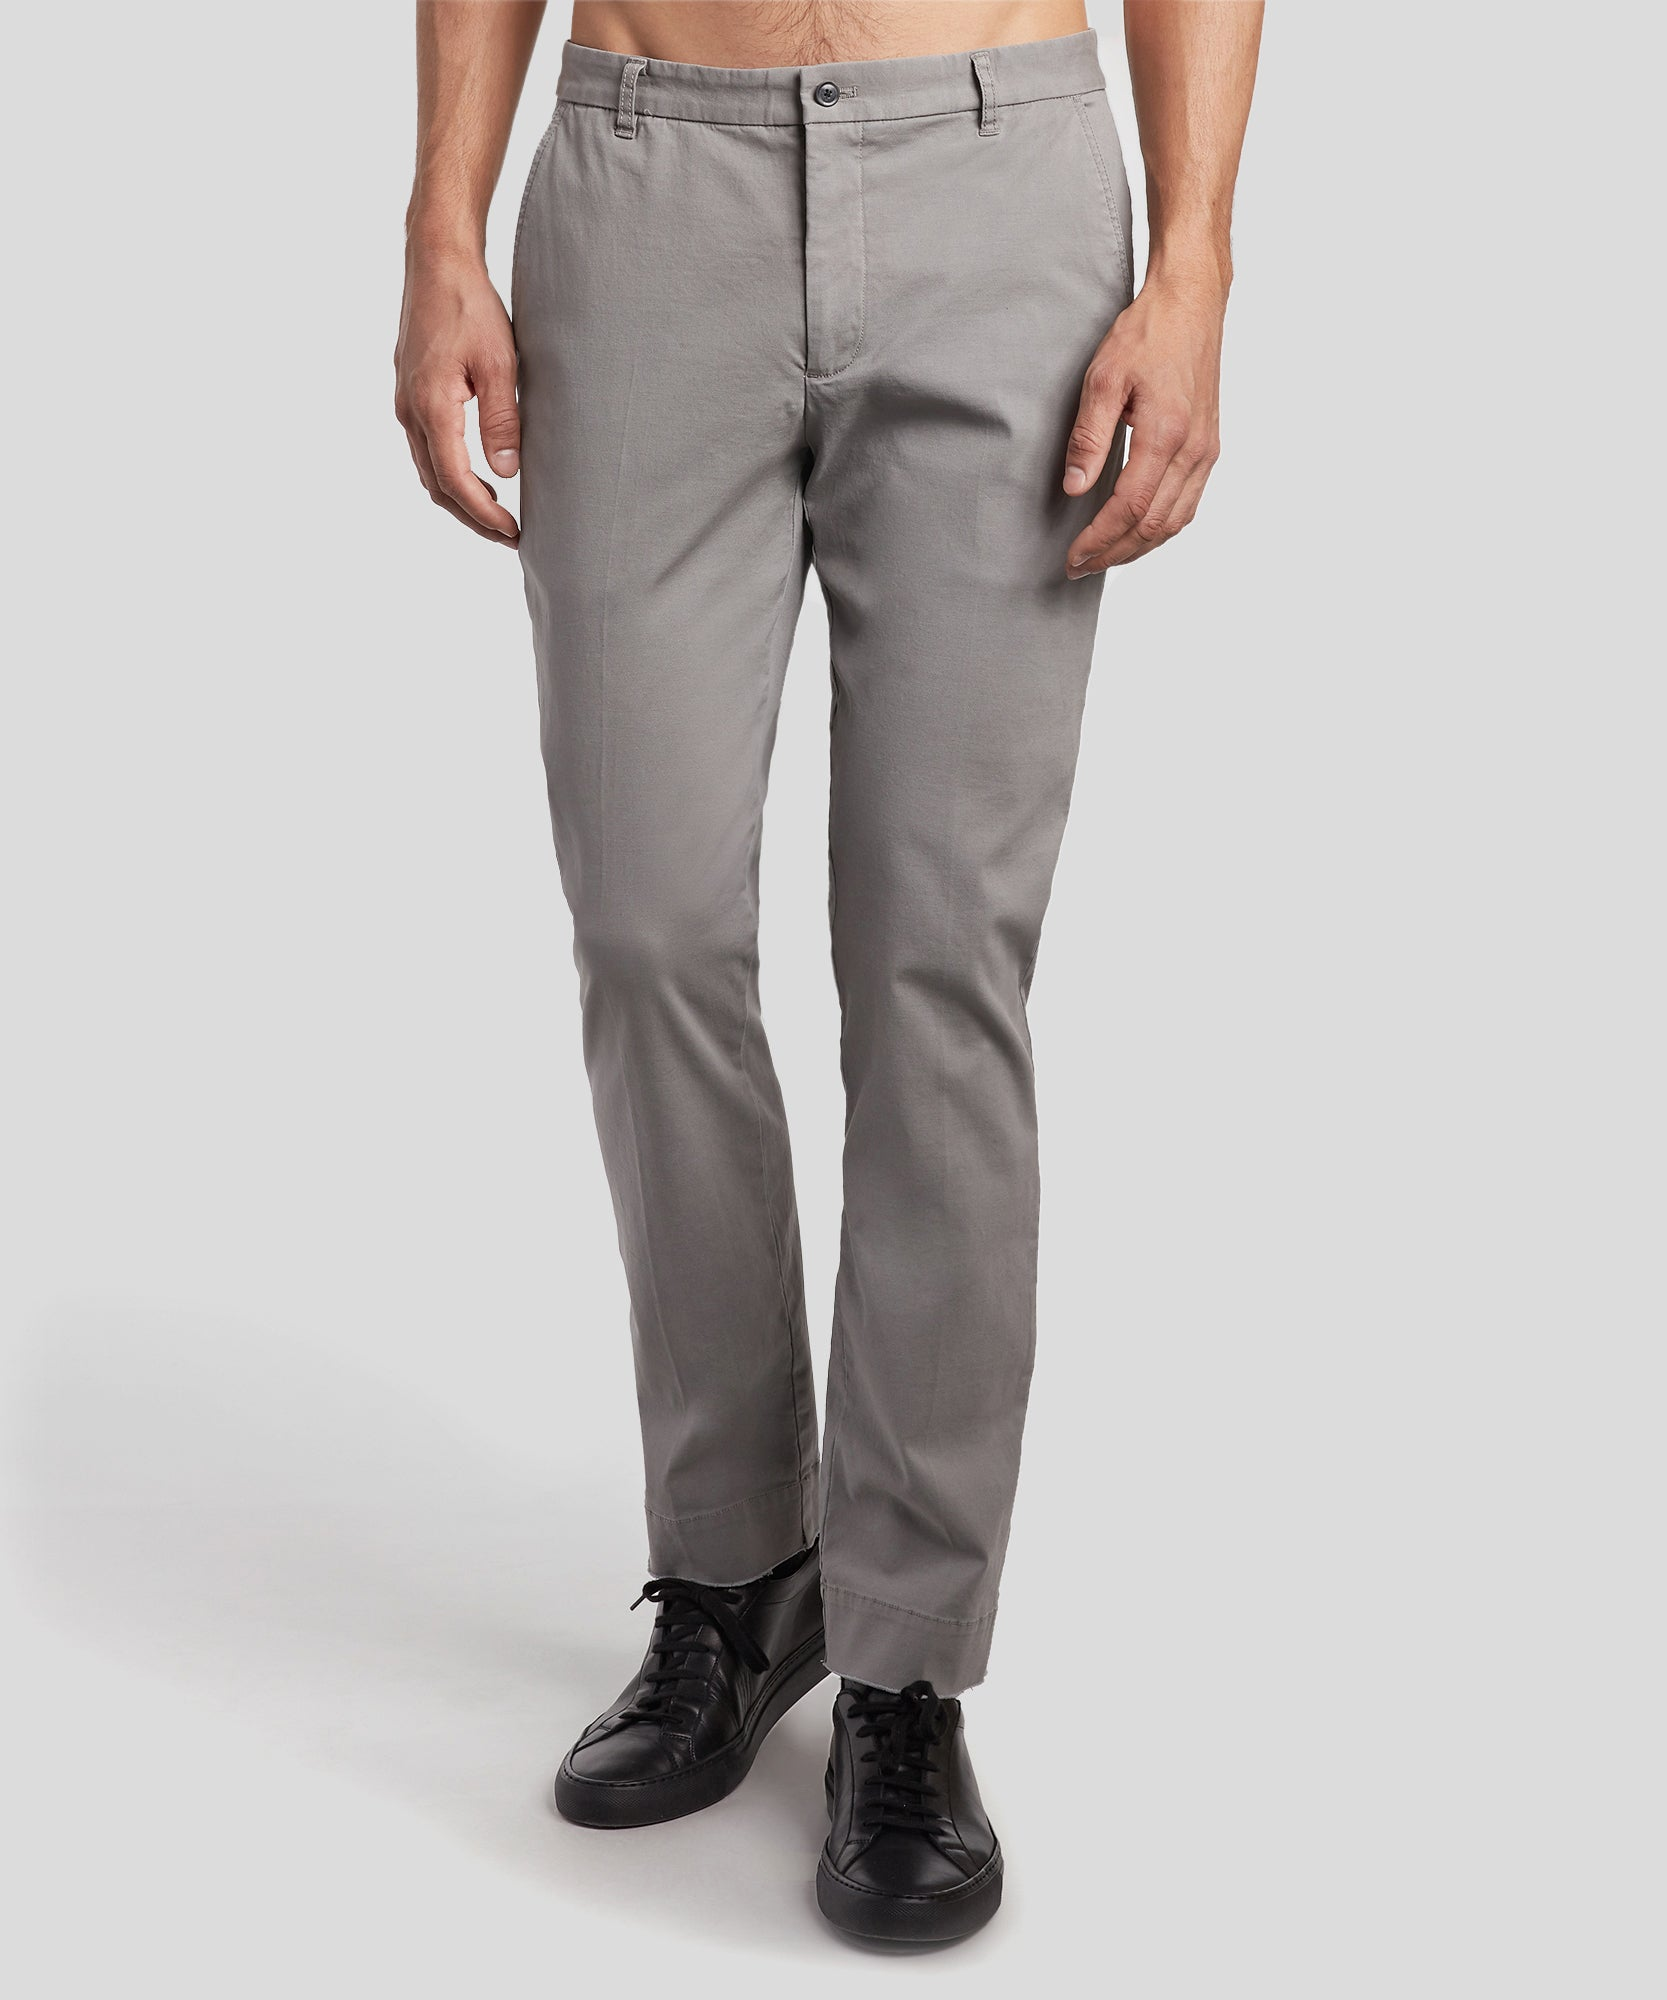 Grey Stretch Cotton Garment Wash Slim Pants - Men's Casual Pants by ATM Anthony Thomas Melillo